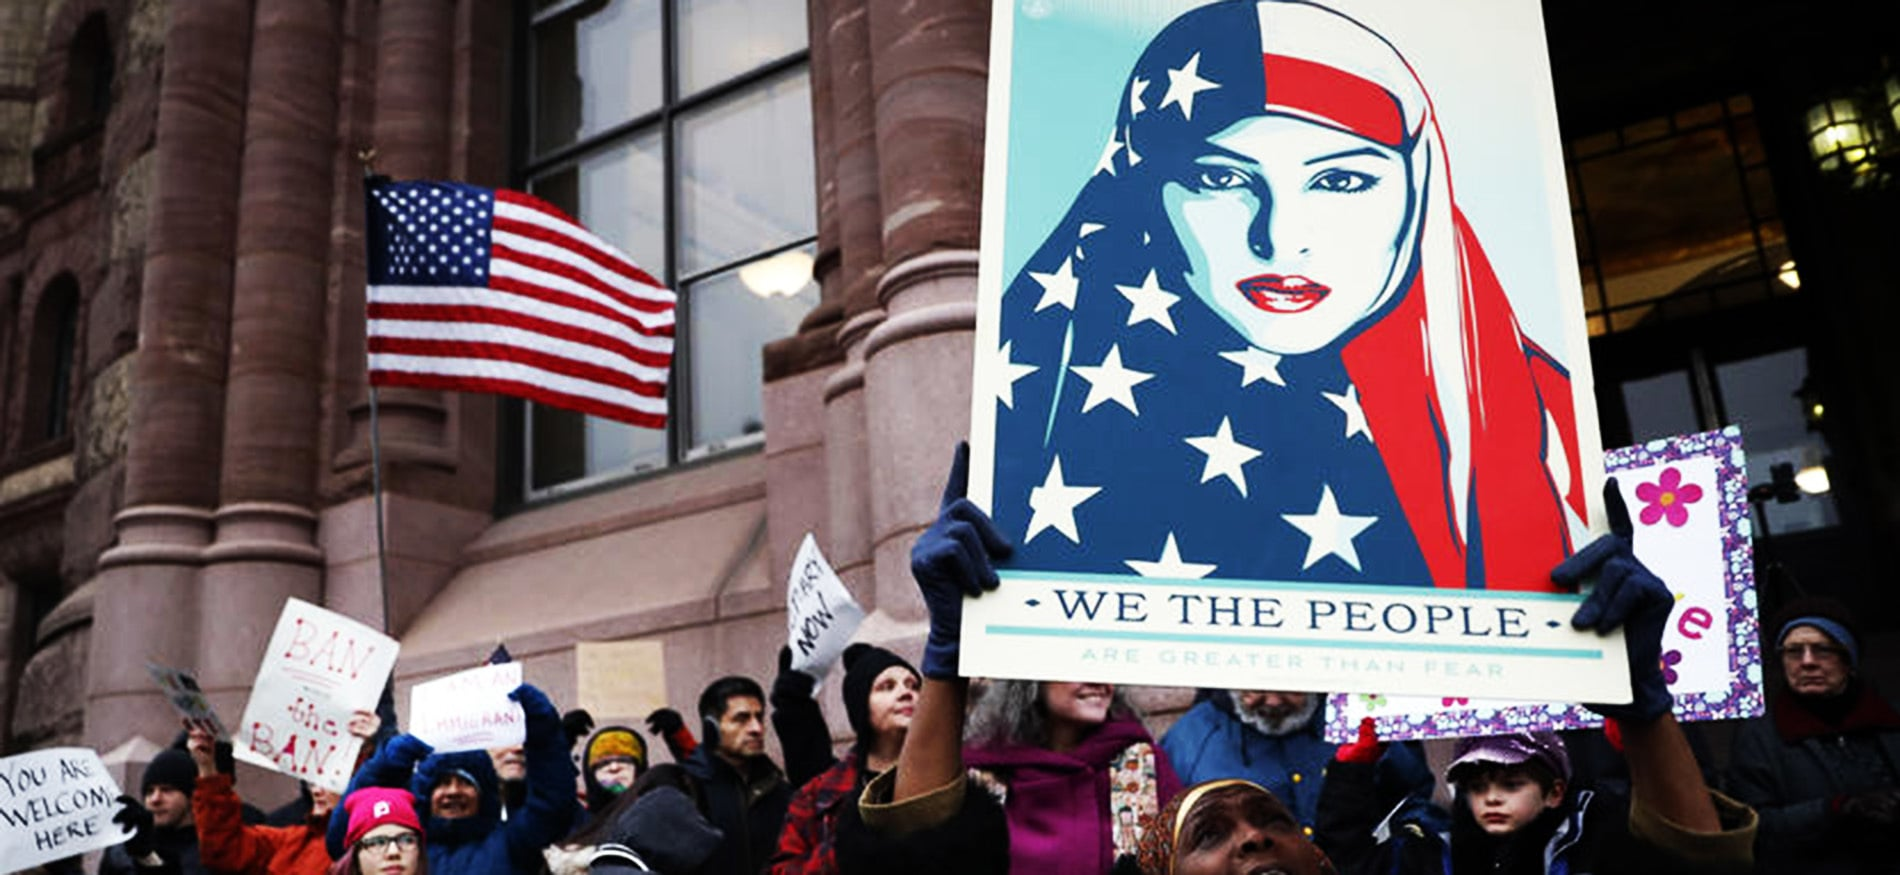 islamophobia in canada essay Freedom to offend: support  canada is on the verge of passing what  systemic racism and religious discrimination including islamophobia, in canada,.